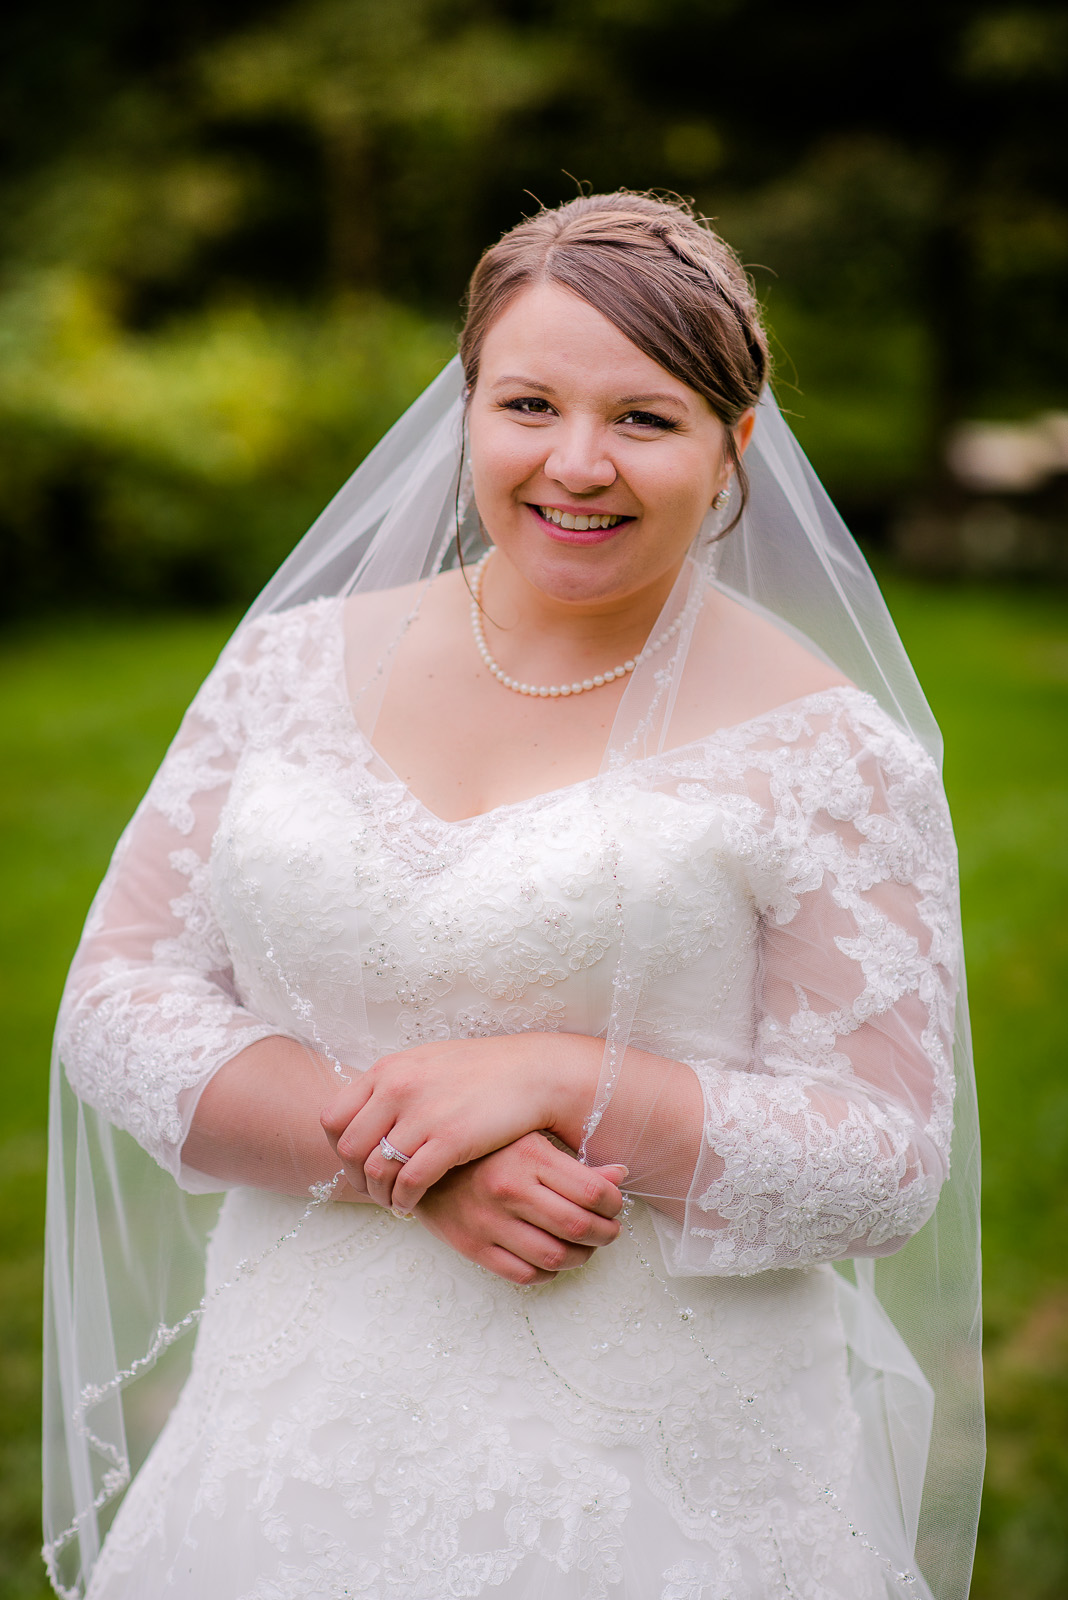 Eric_and_Christy_Photography_Blog_2018_Portraits-47